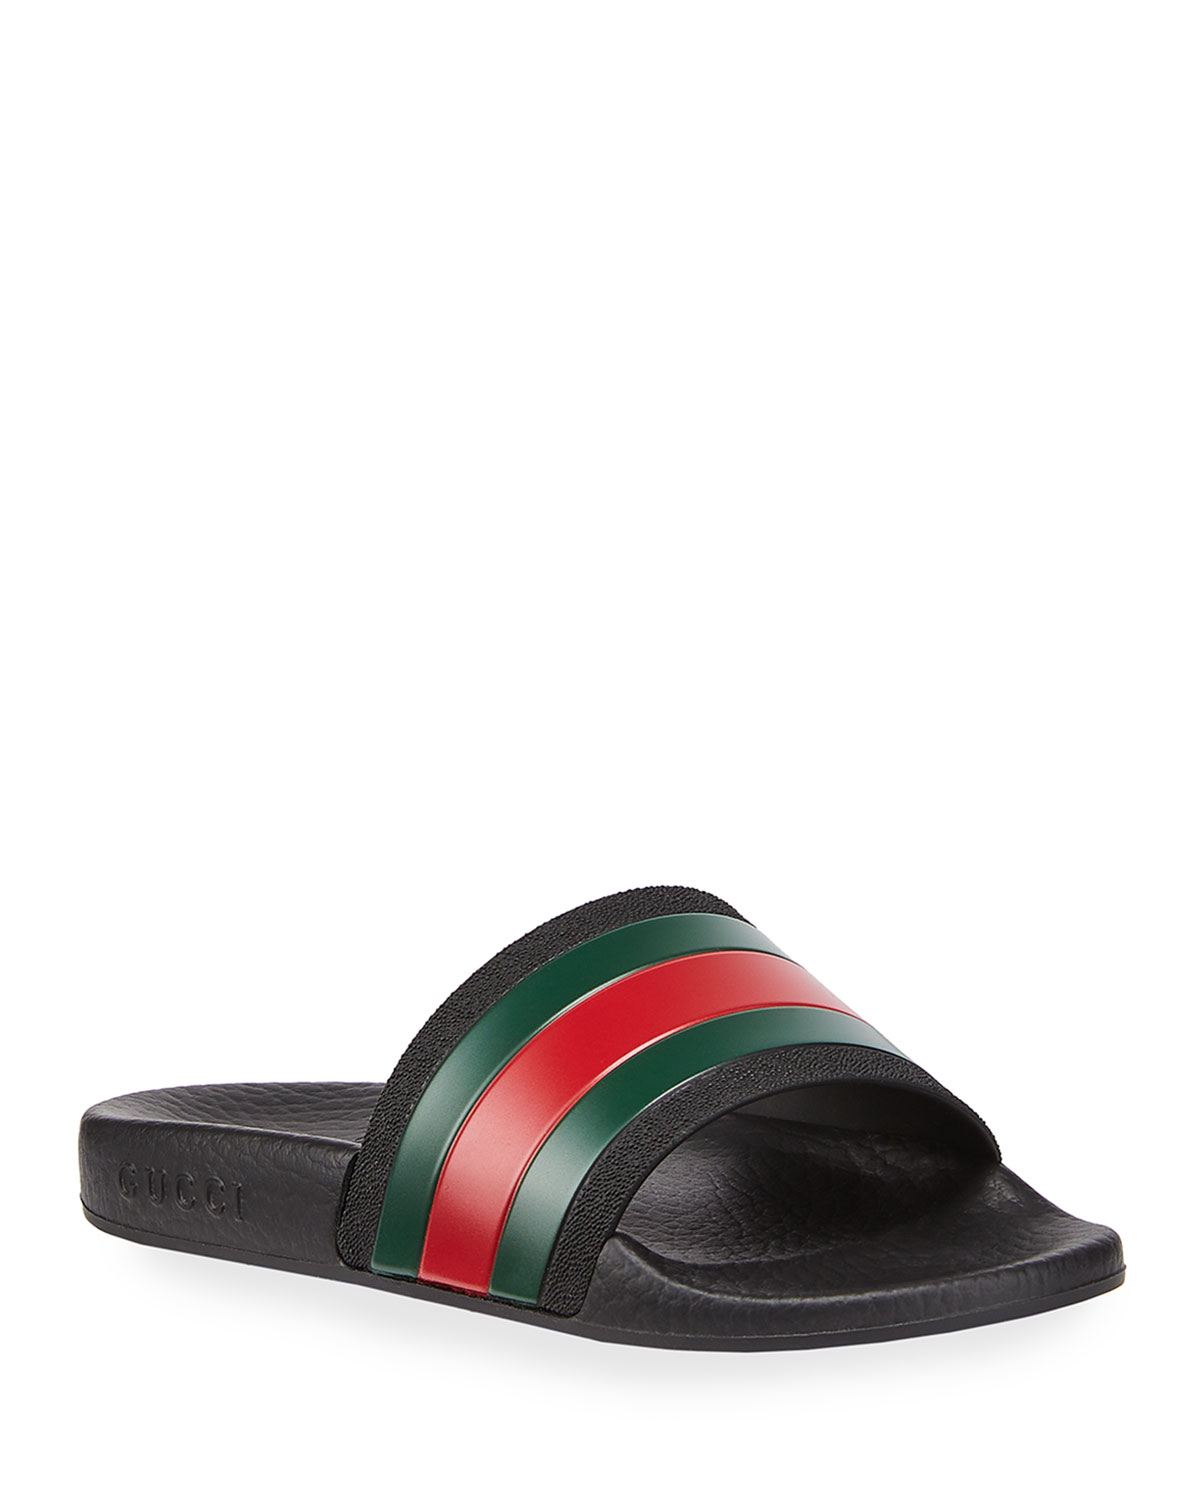 285d3b20037 Gucci Pursuit Web Rubber Slide Sandal